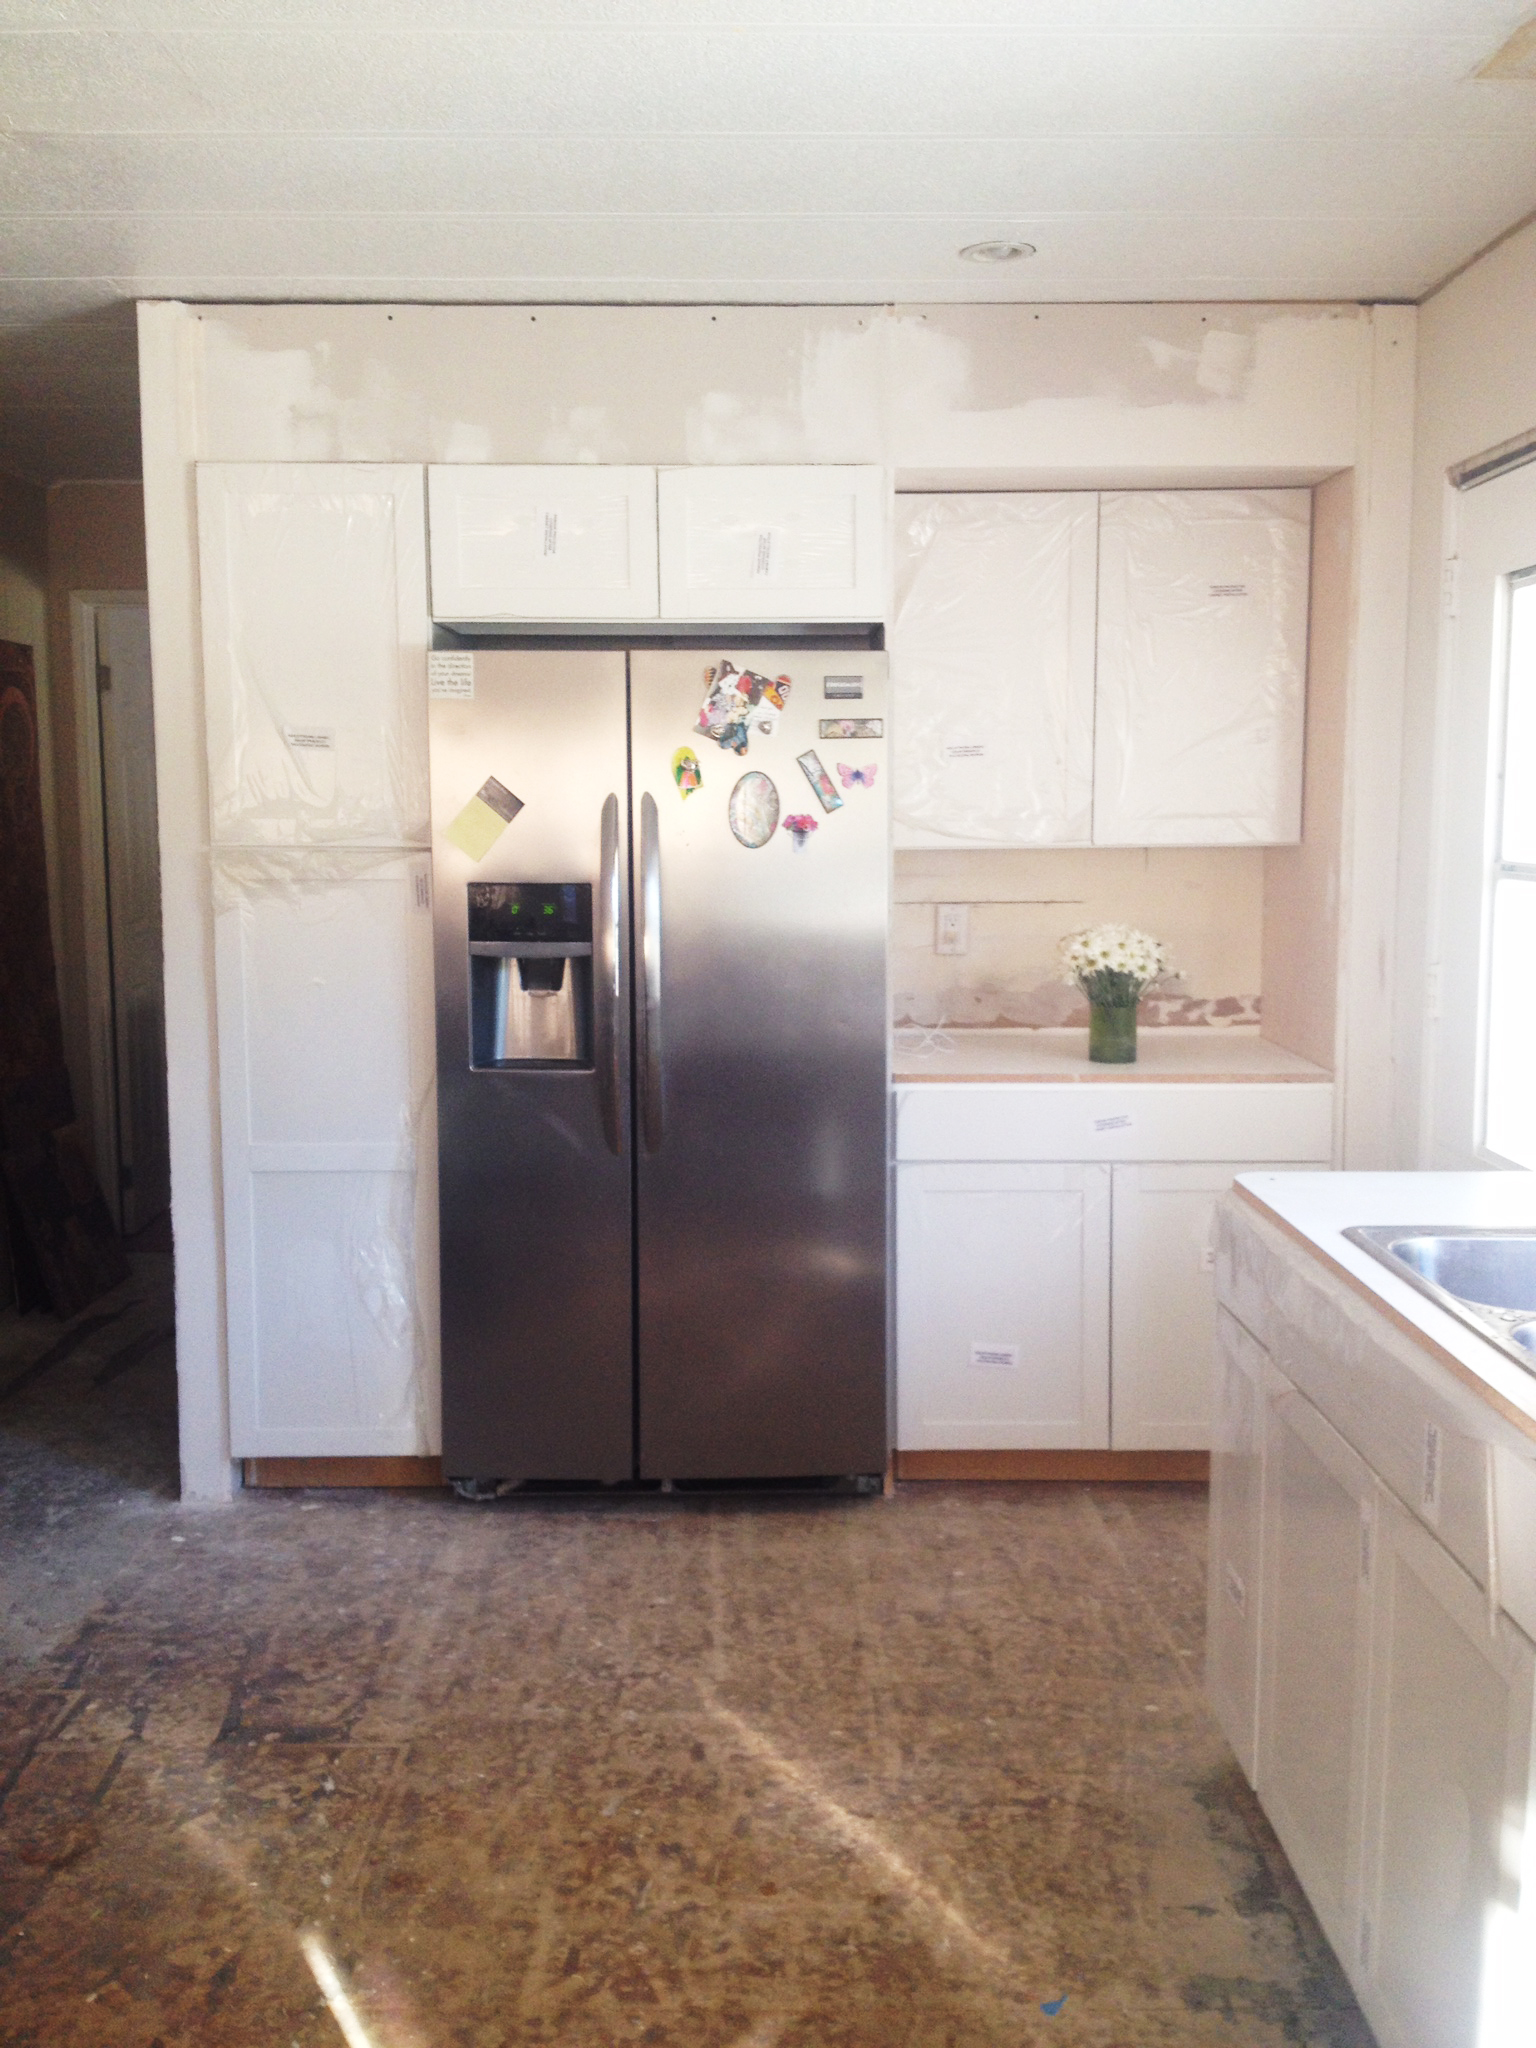 Built-in fridge flush with cabinets